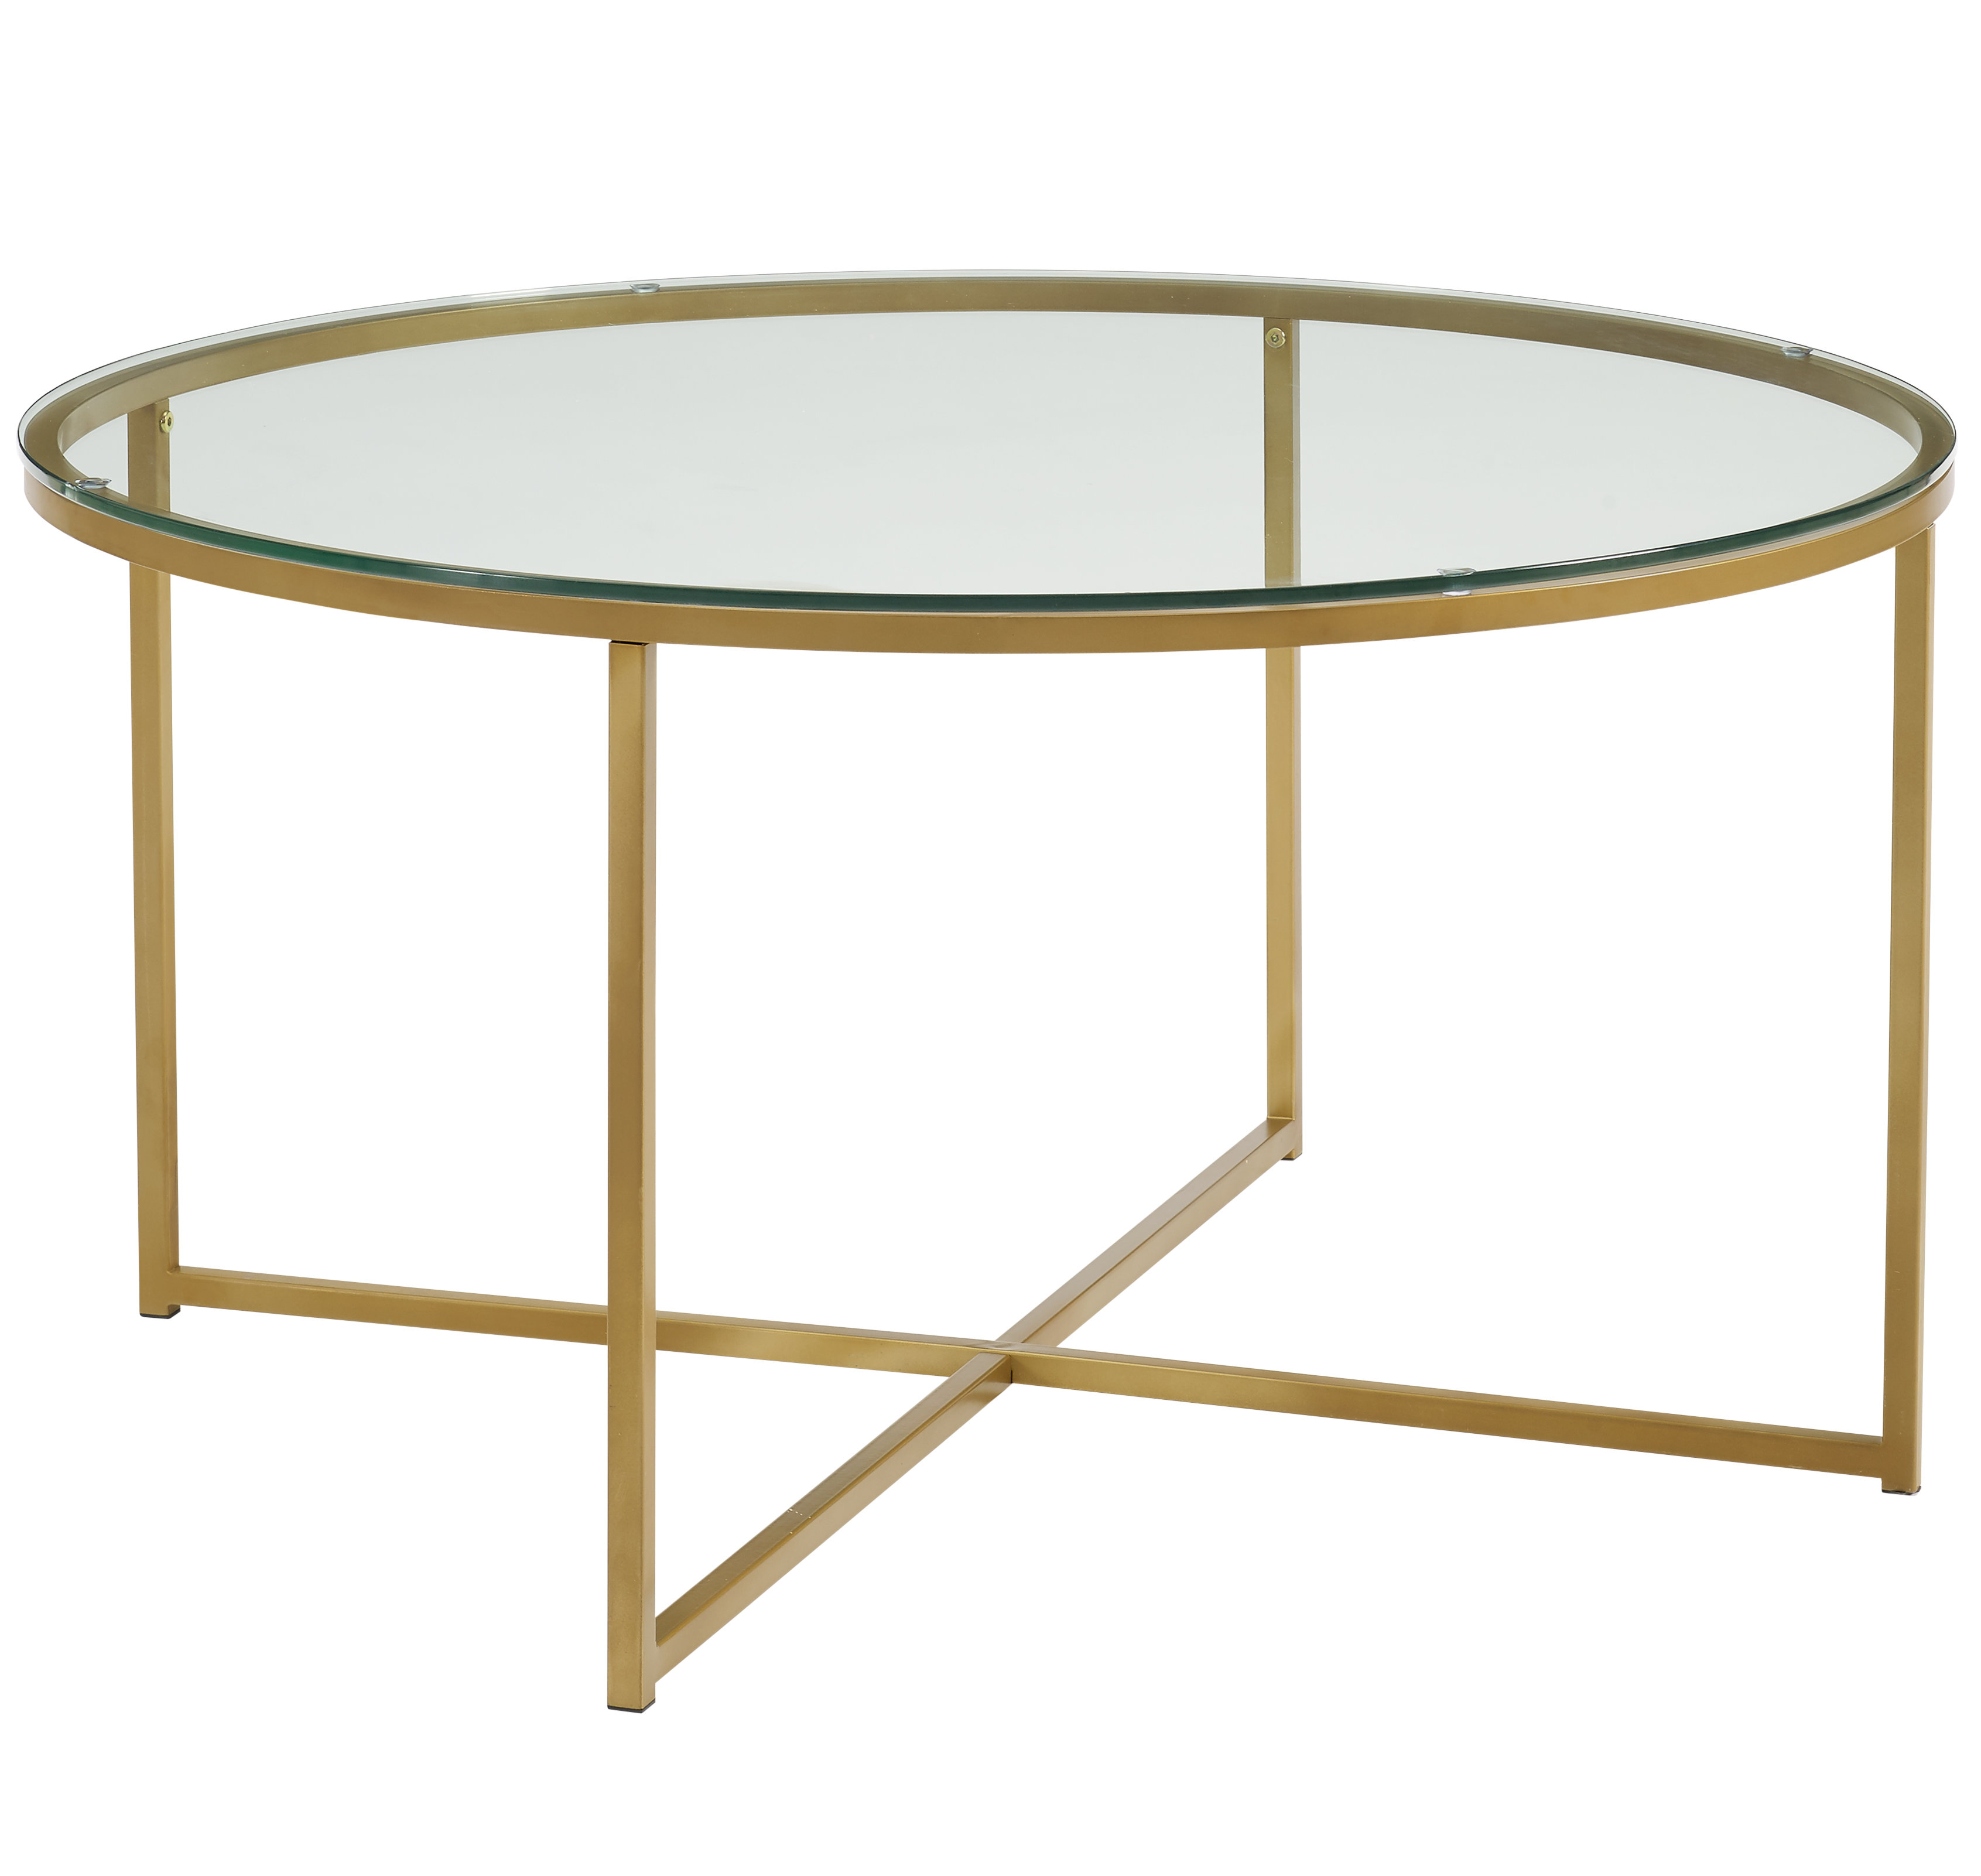 zara coffee table reviews accent teal accessories metal hairpin legs steel echo dot solid wood tables oak threshold trim inch round vinyl tablecloth wine rack bar west elm white